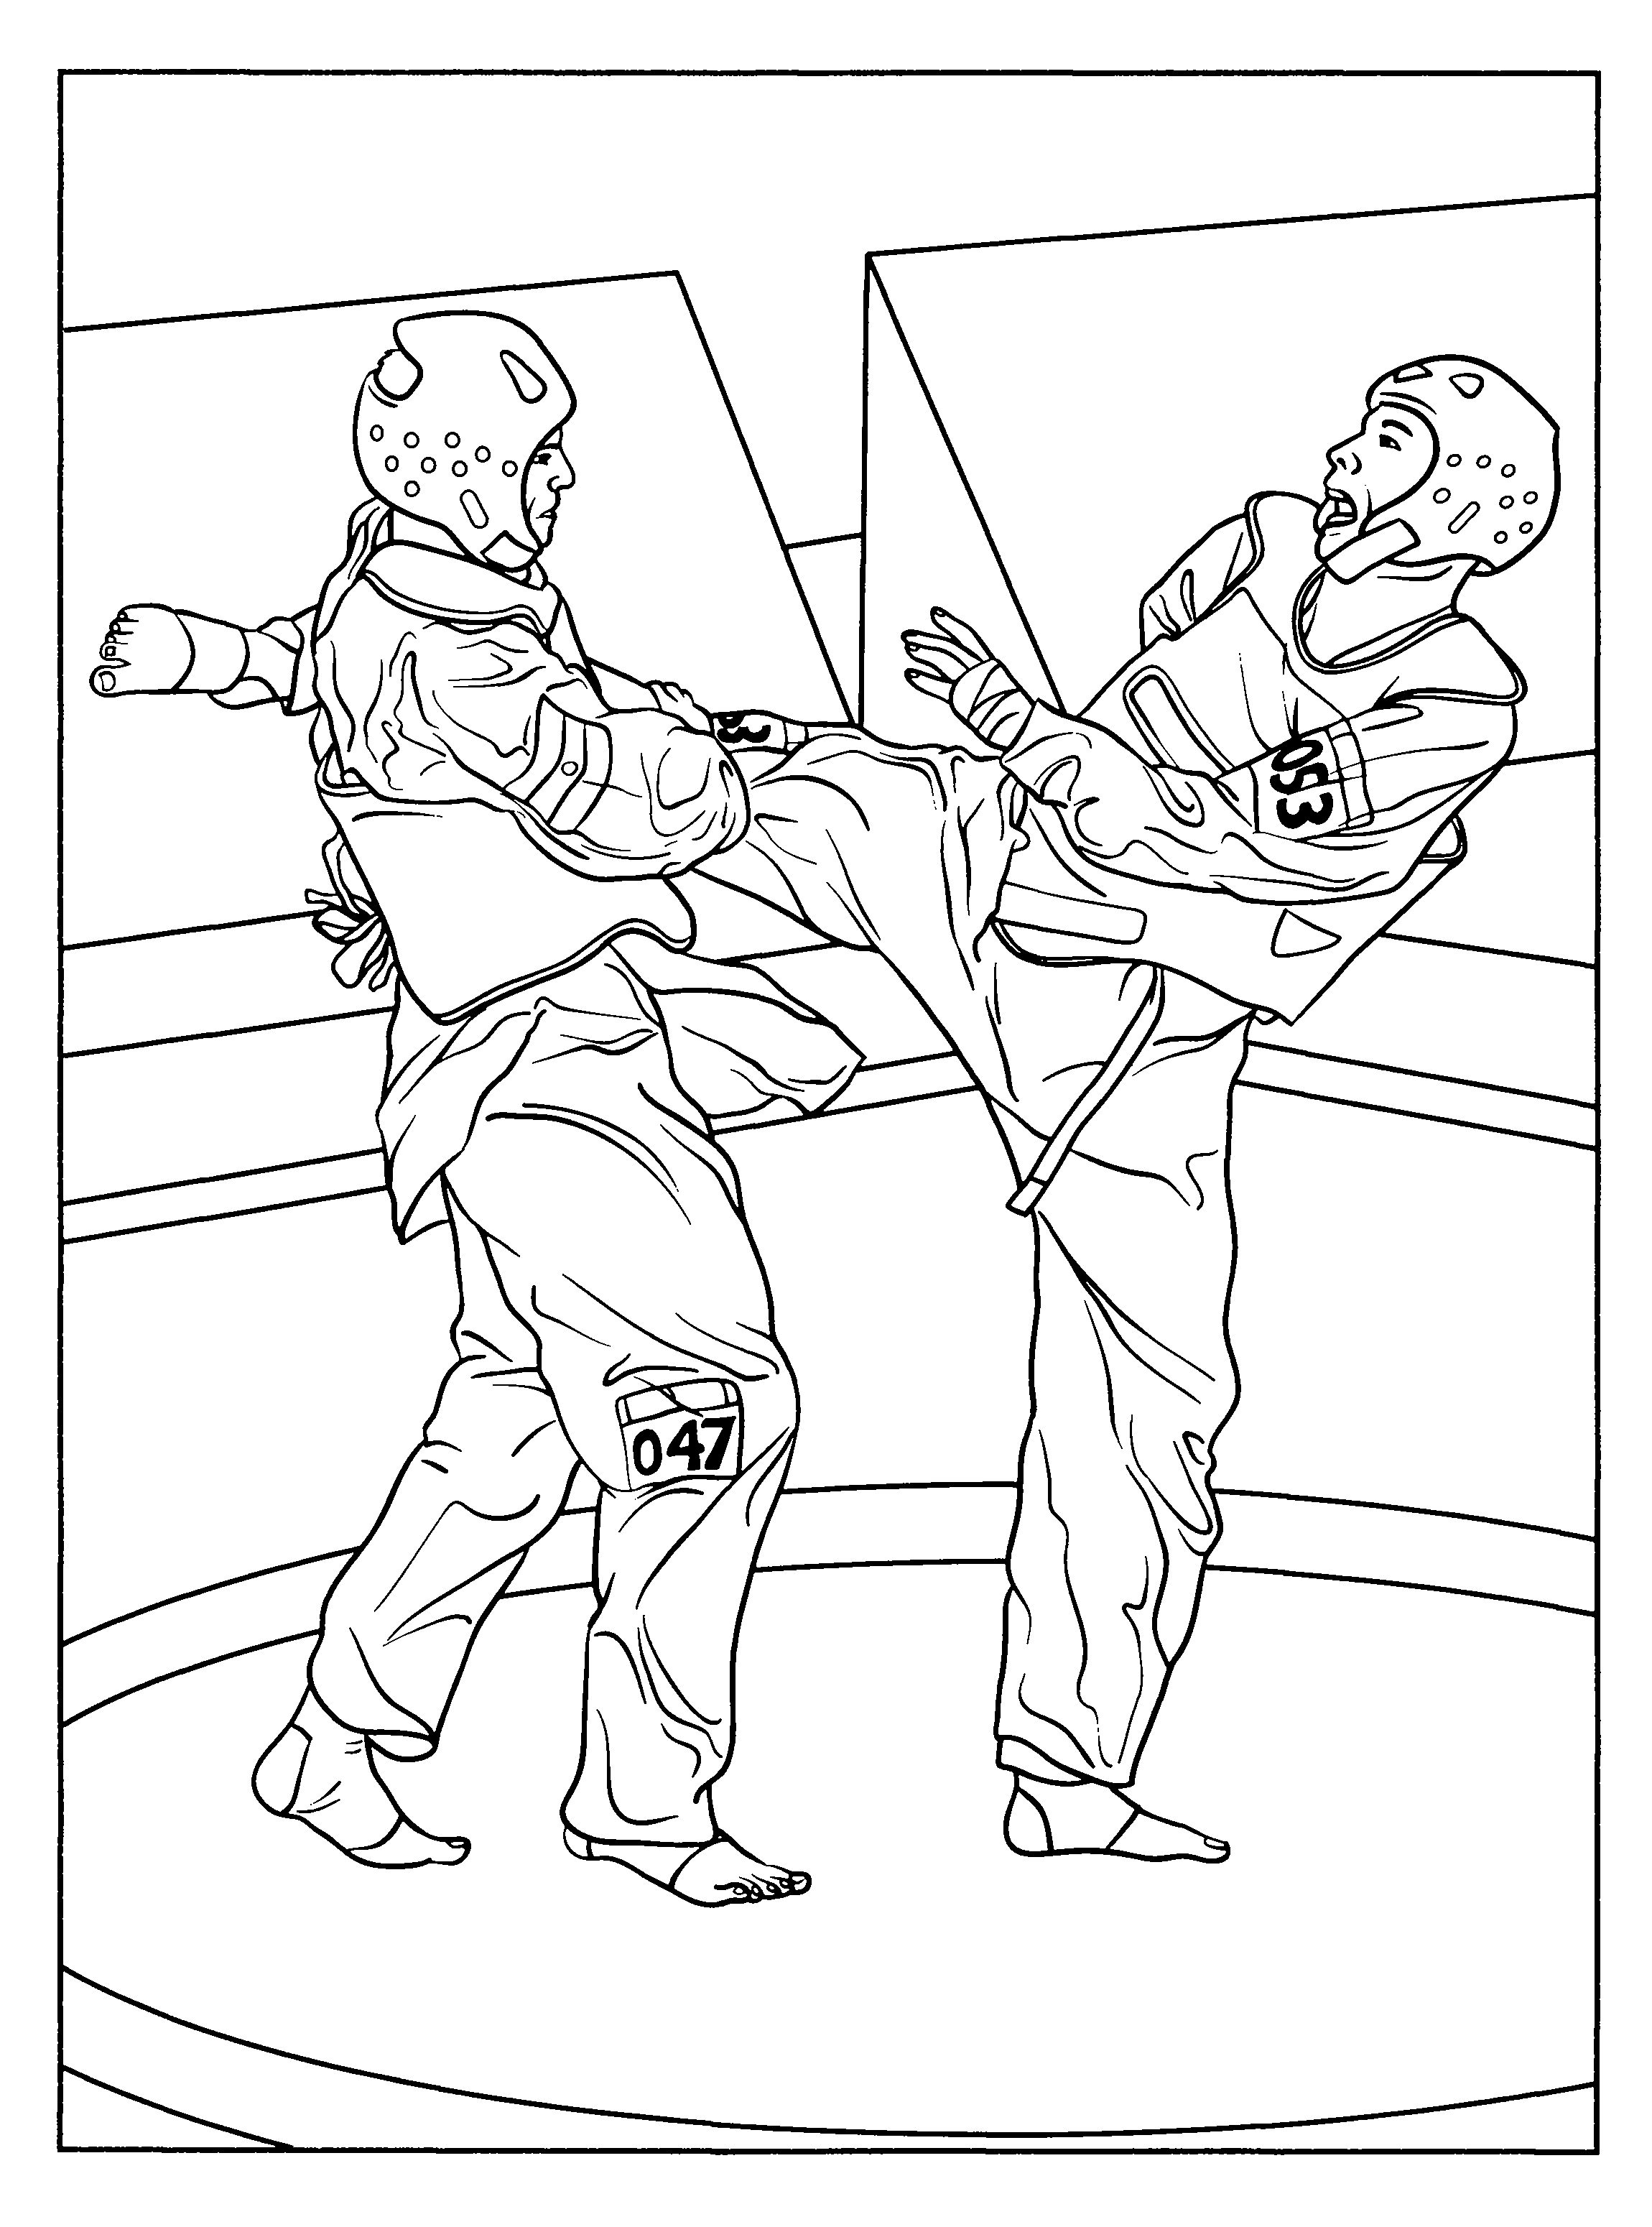 karate coloring pages for kids Coloring Pages Pinterest Karate